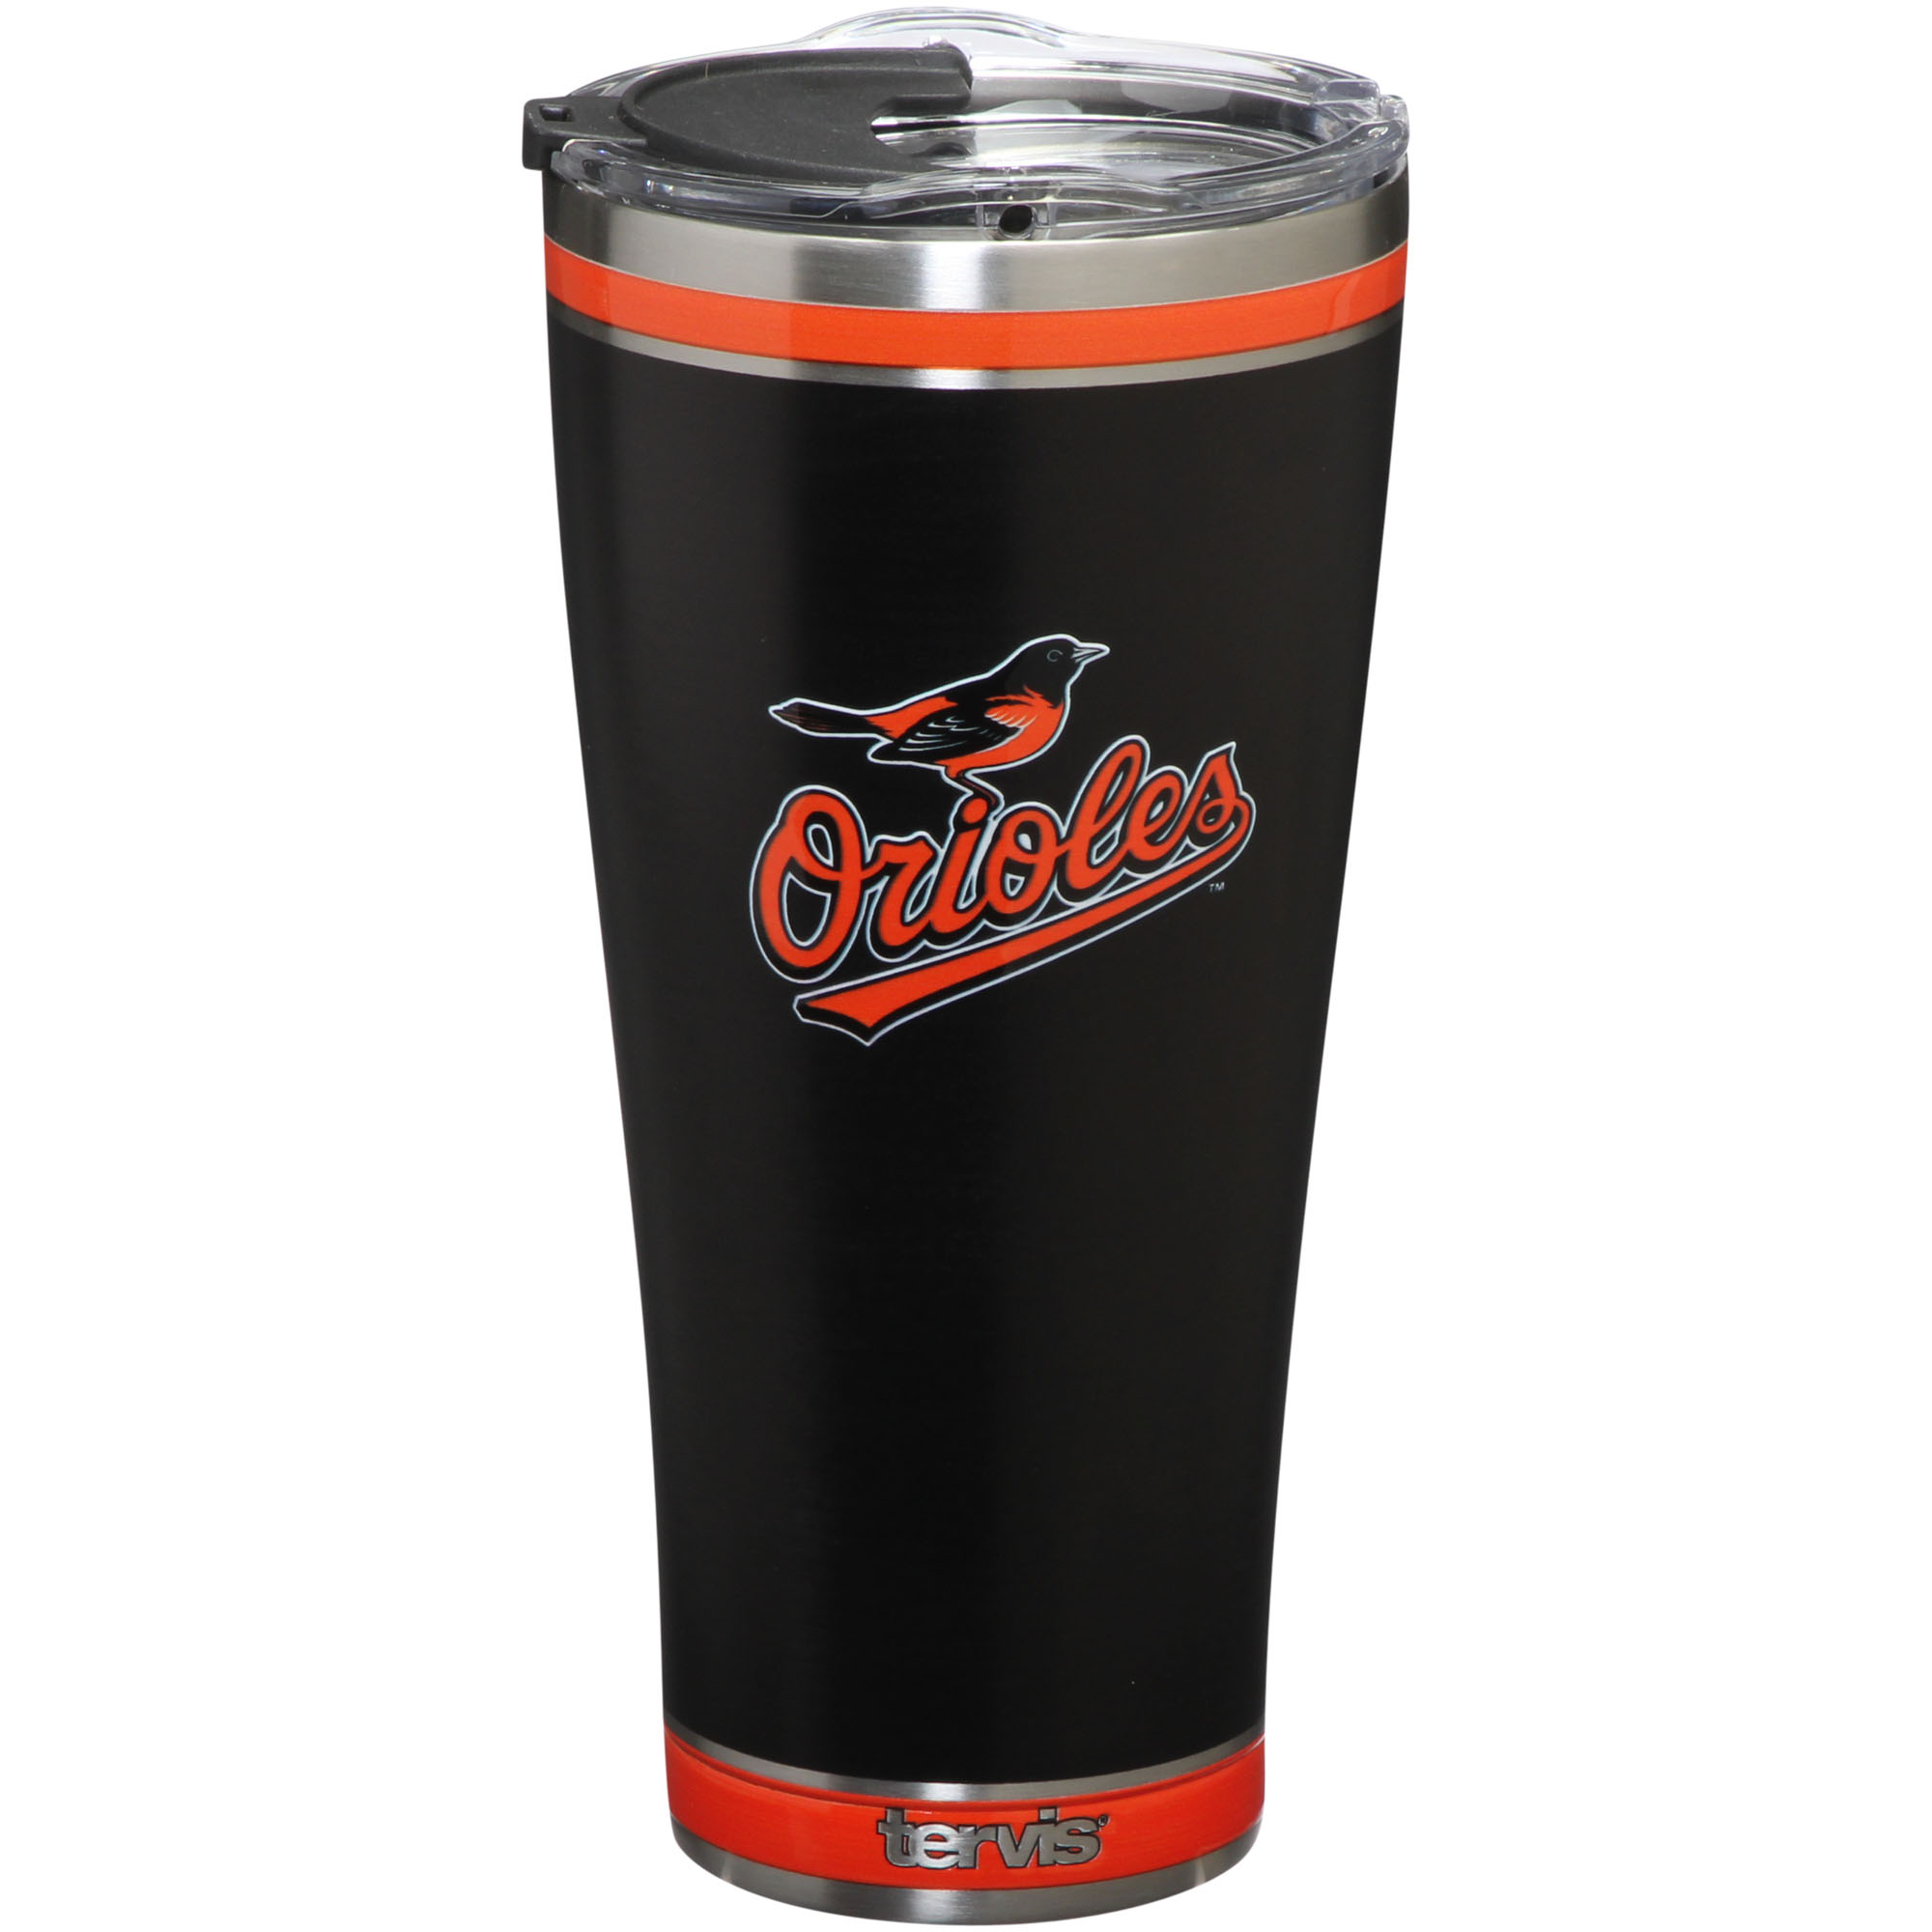 Baltimore Orioles Tervis 30oz. Stainless Steel Tumbler - No Size